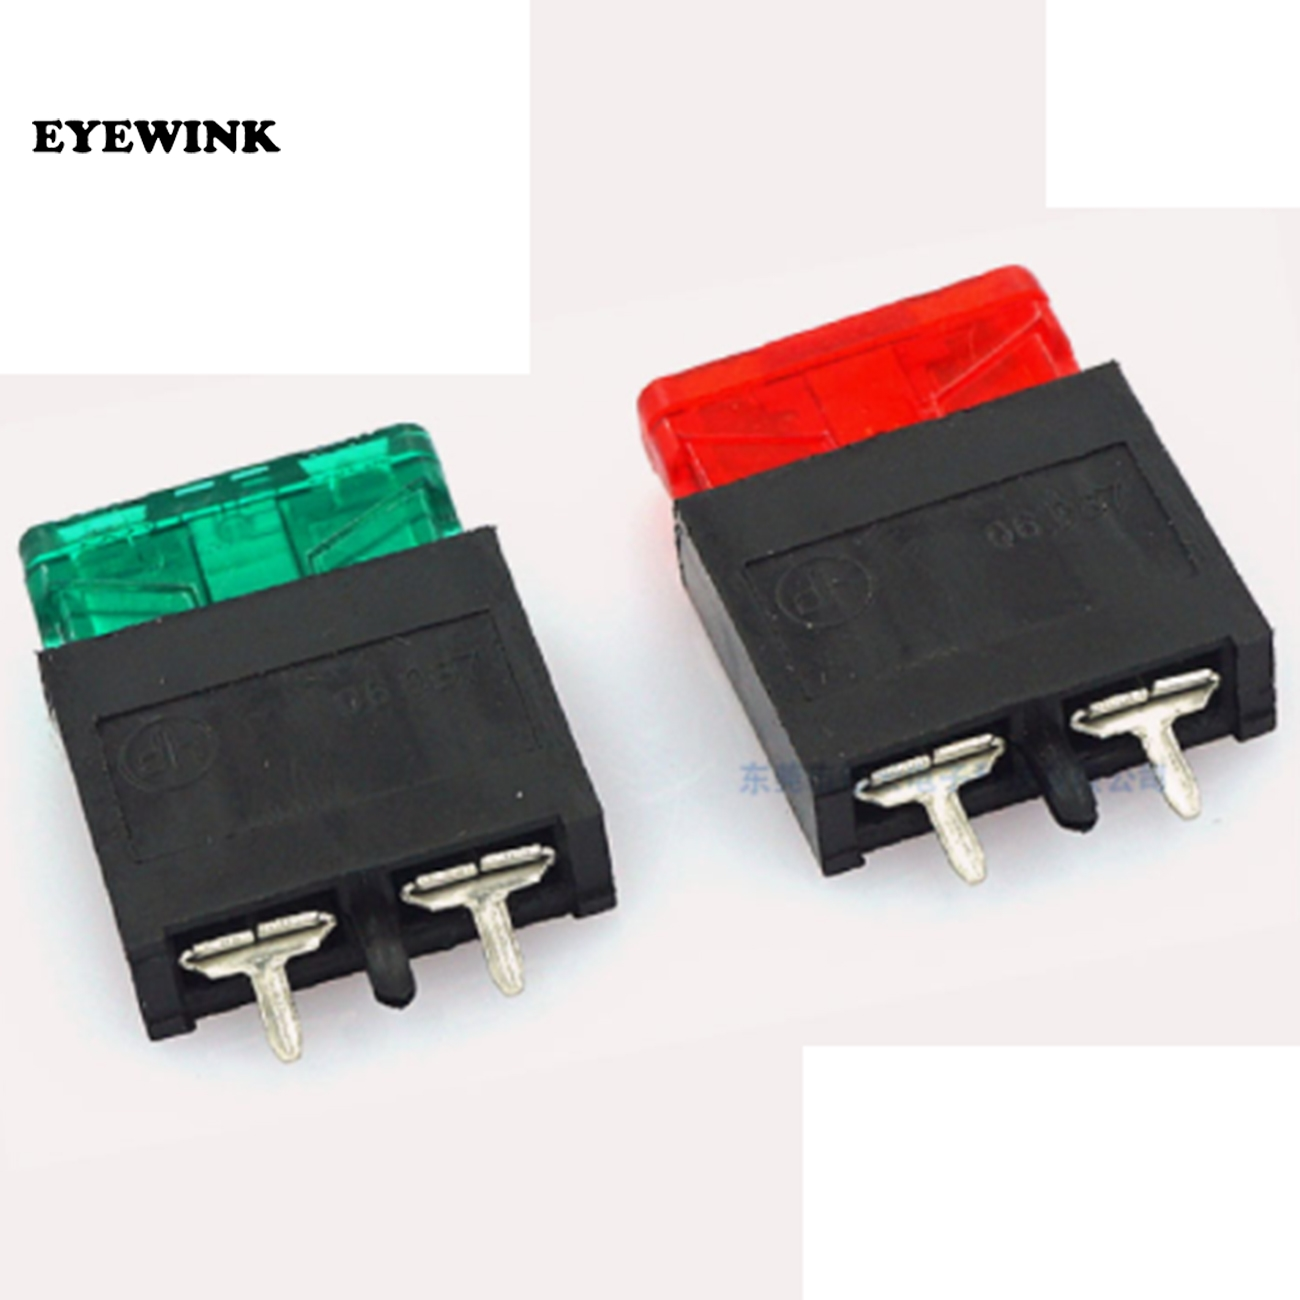 medium resolution of 30pcs lot jh7032 car fuse holder pcb installation medium insert fuse fuse box fuse holder welding in integrated circuits from electronic components